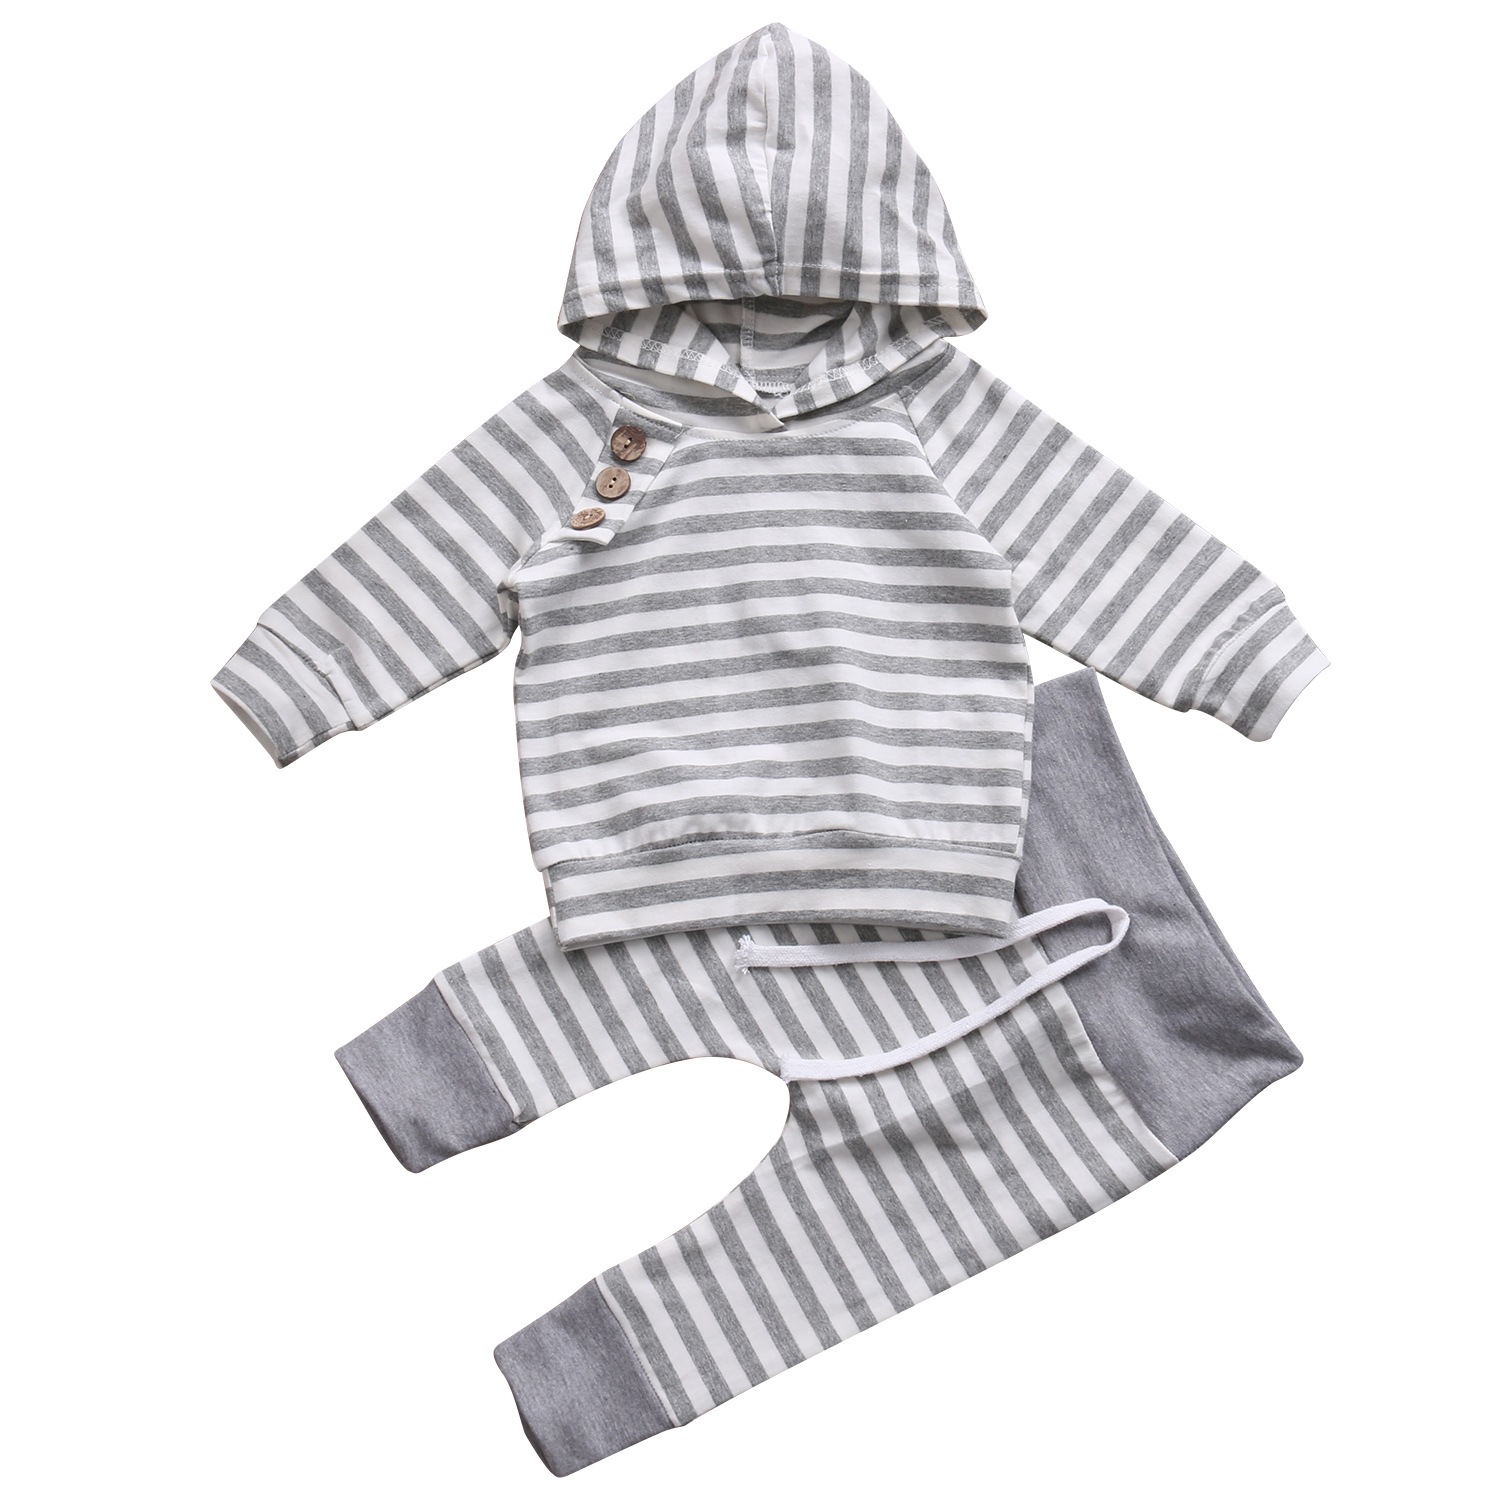 Toddler Newborn Infant Kids Baby Boy Girl Hoodie Tops Long Sleeve Shirt Pants Striped Outfit 2Pcs Set Clothes 2Pcs Set organic airplane newborn baby boy girl clothes set tops t shirt pants long sleeve cotton blue 2pcs outfits baby boys set